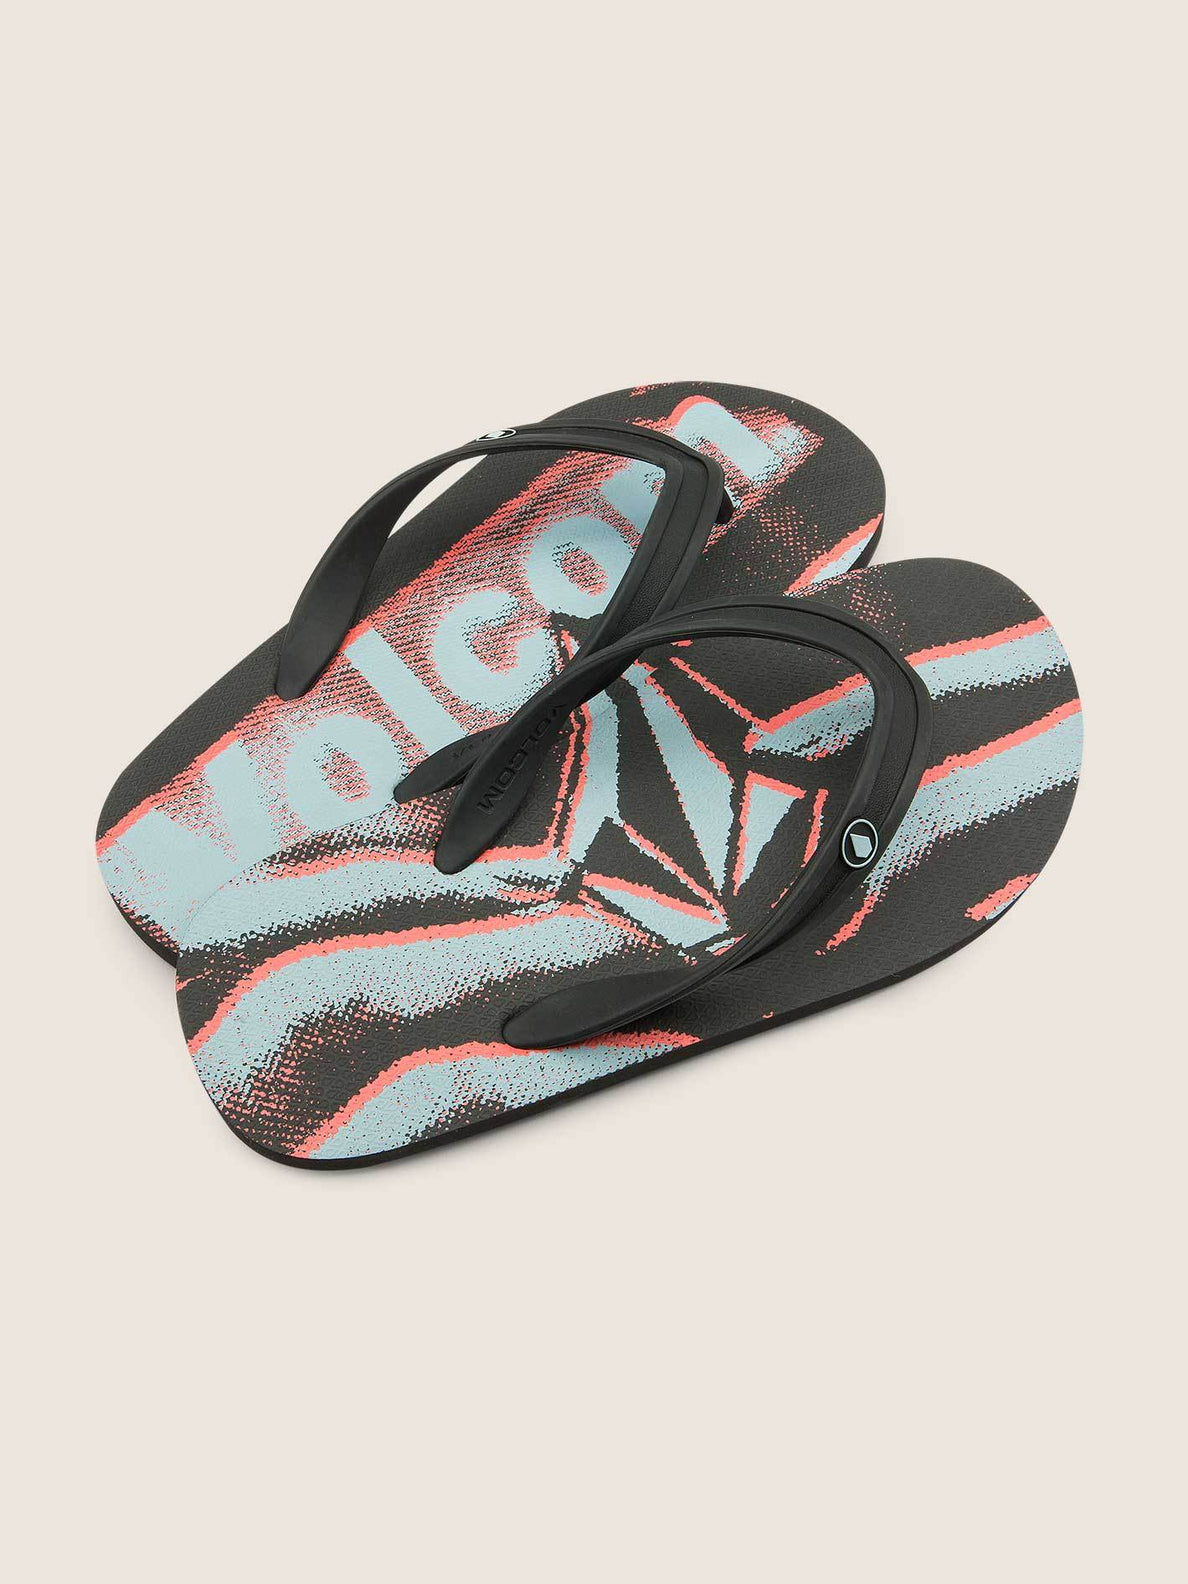 Big Boys Rocker 2 Sandals In Electric Coral, Front View